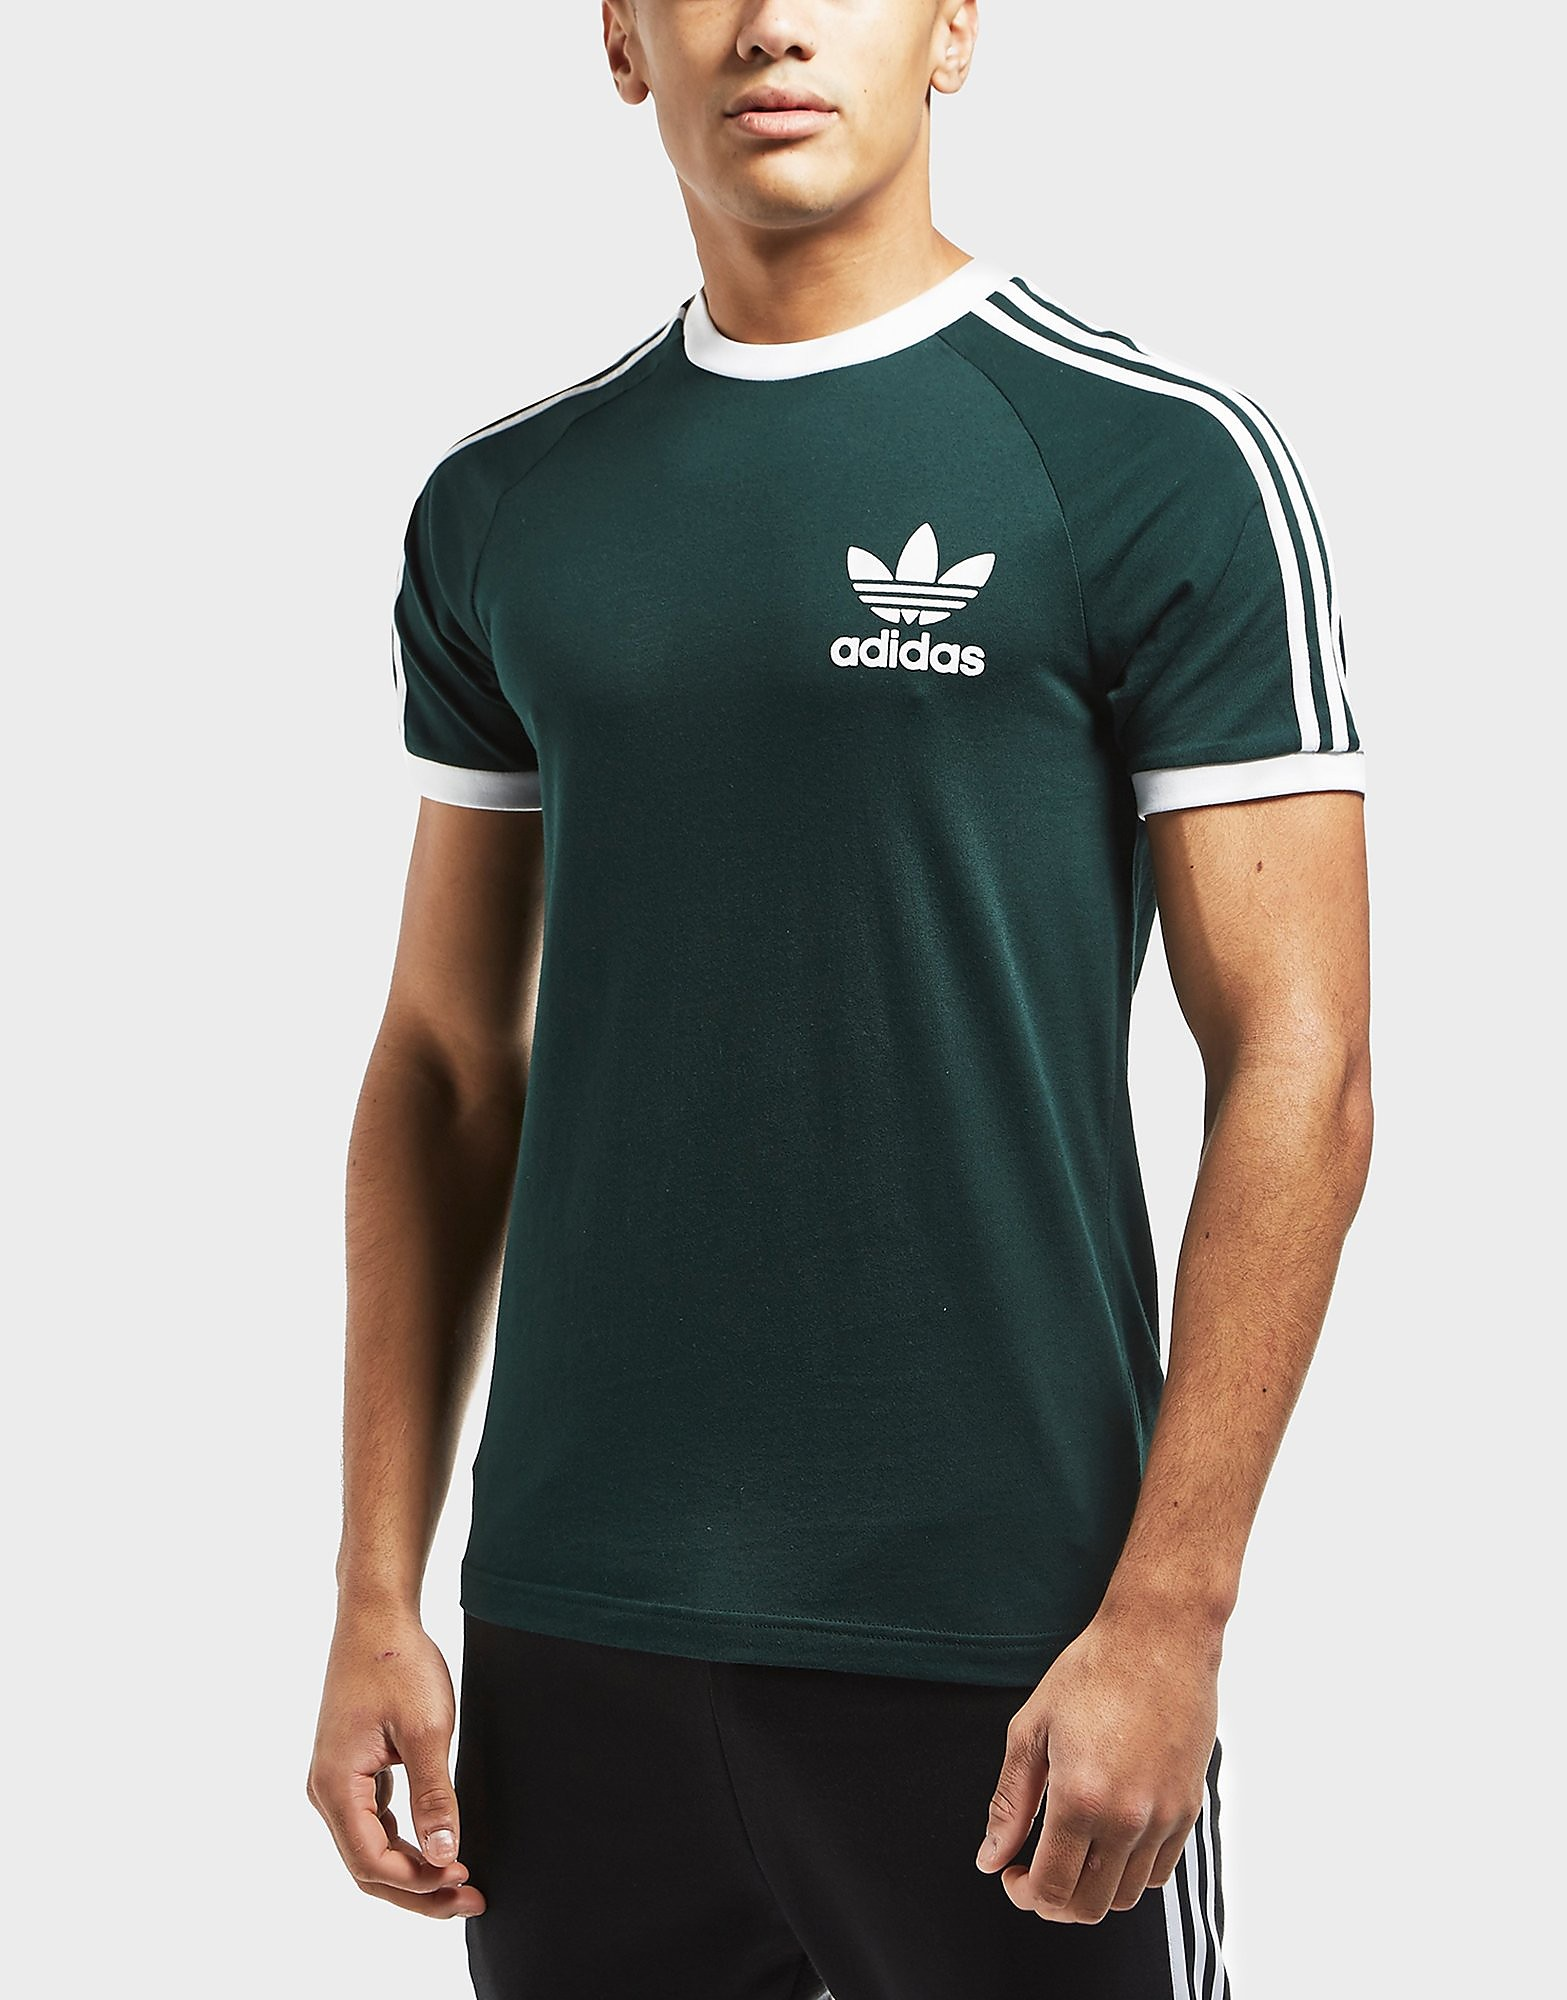 adidas Originals California Short Sleeve T-Shirt